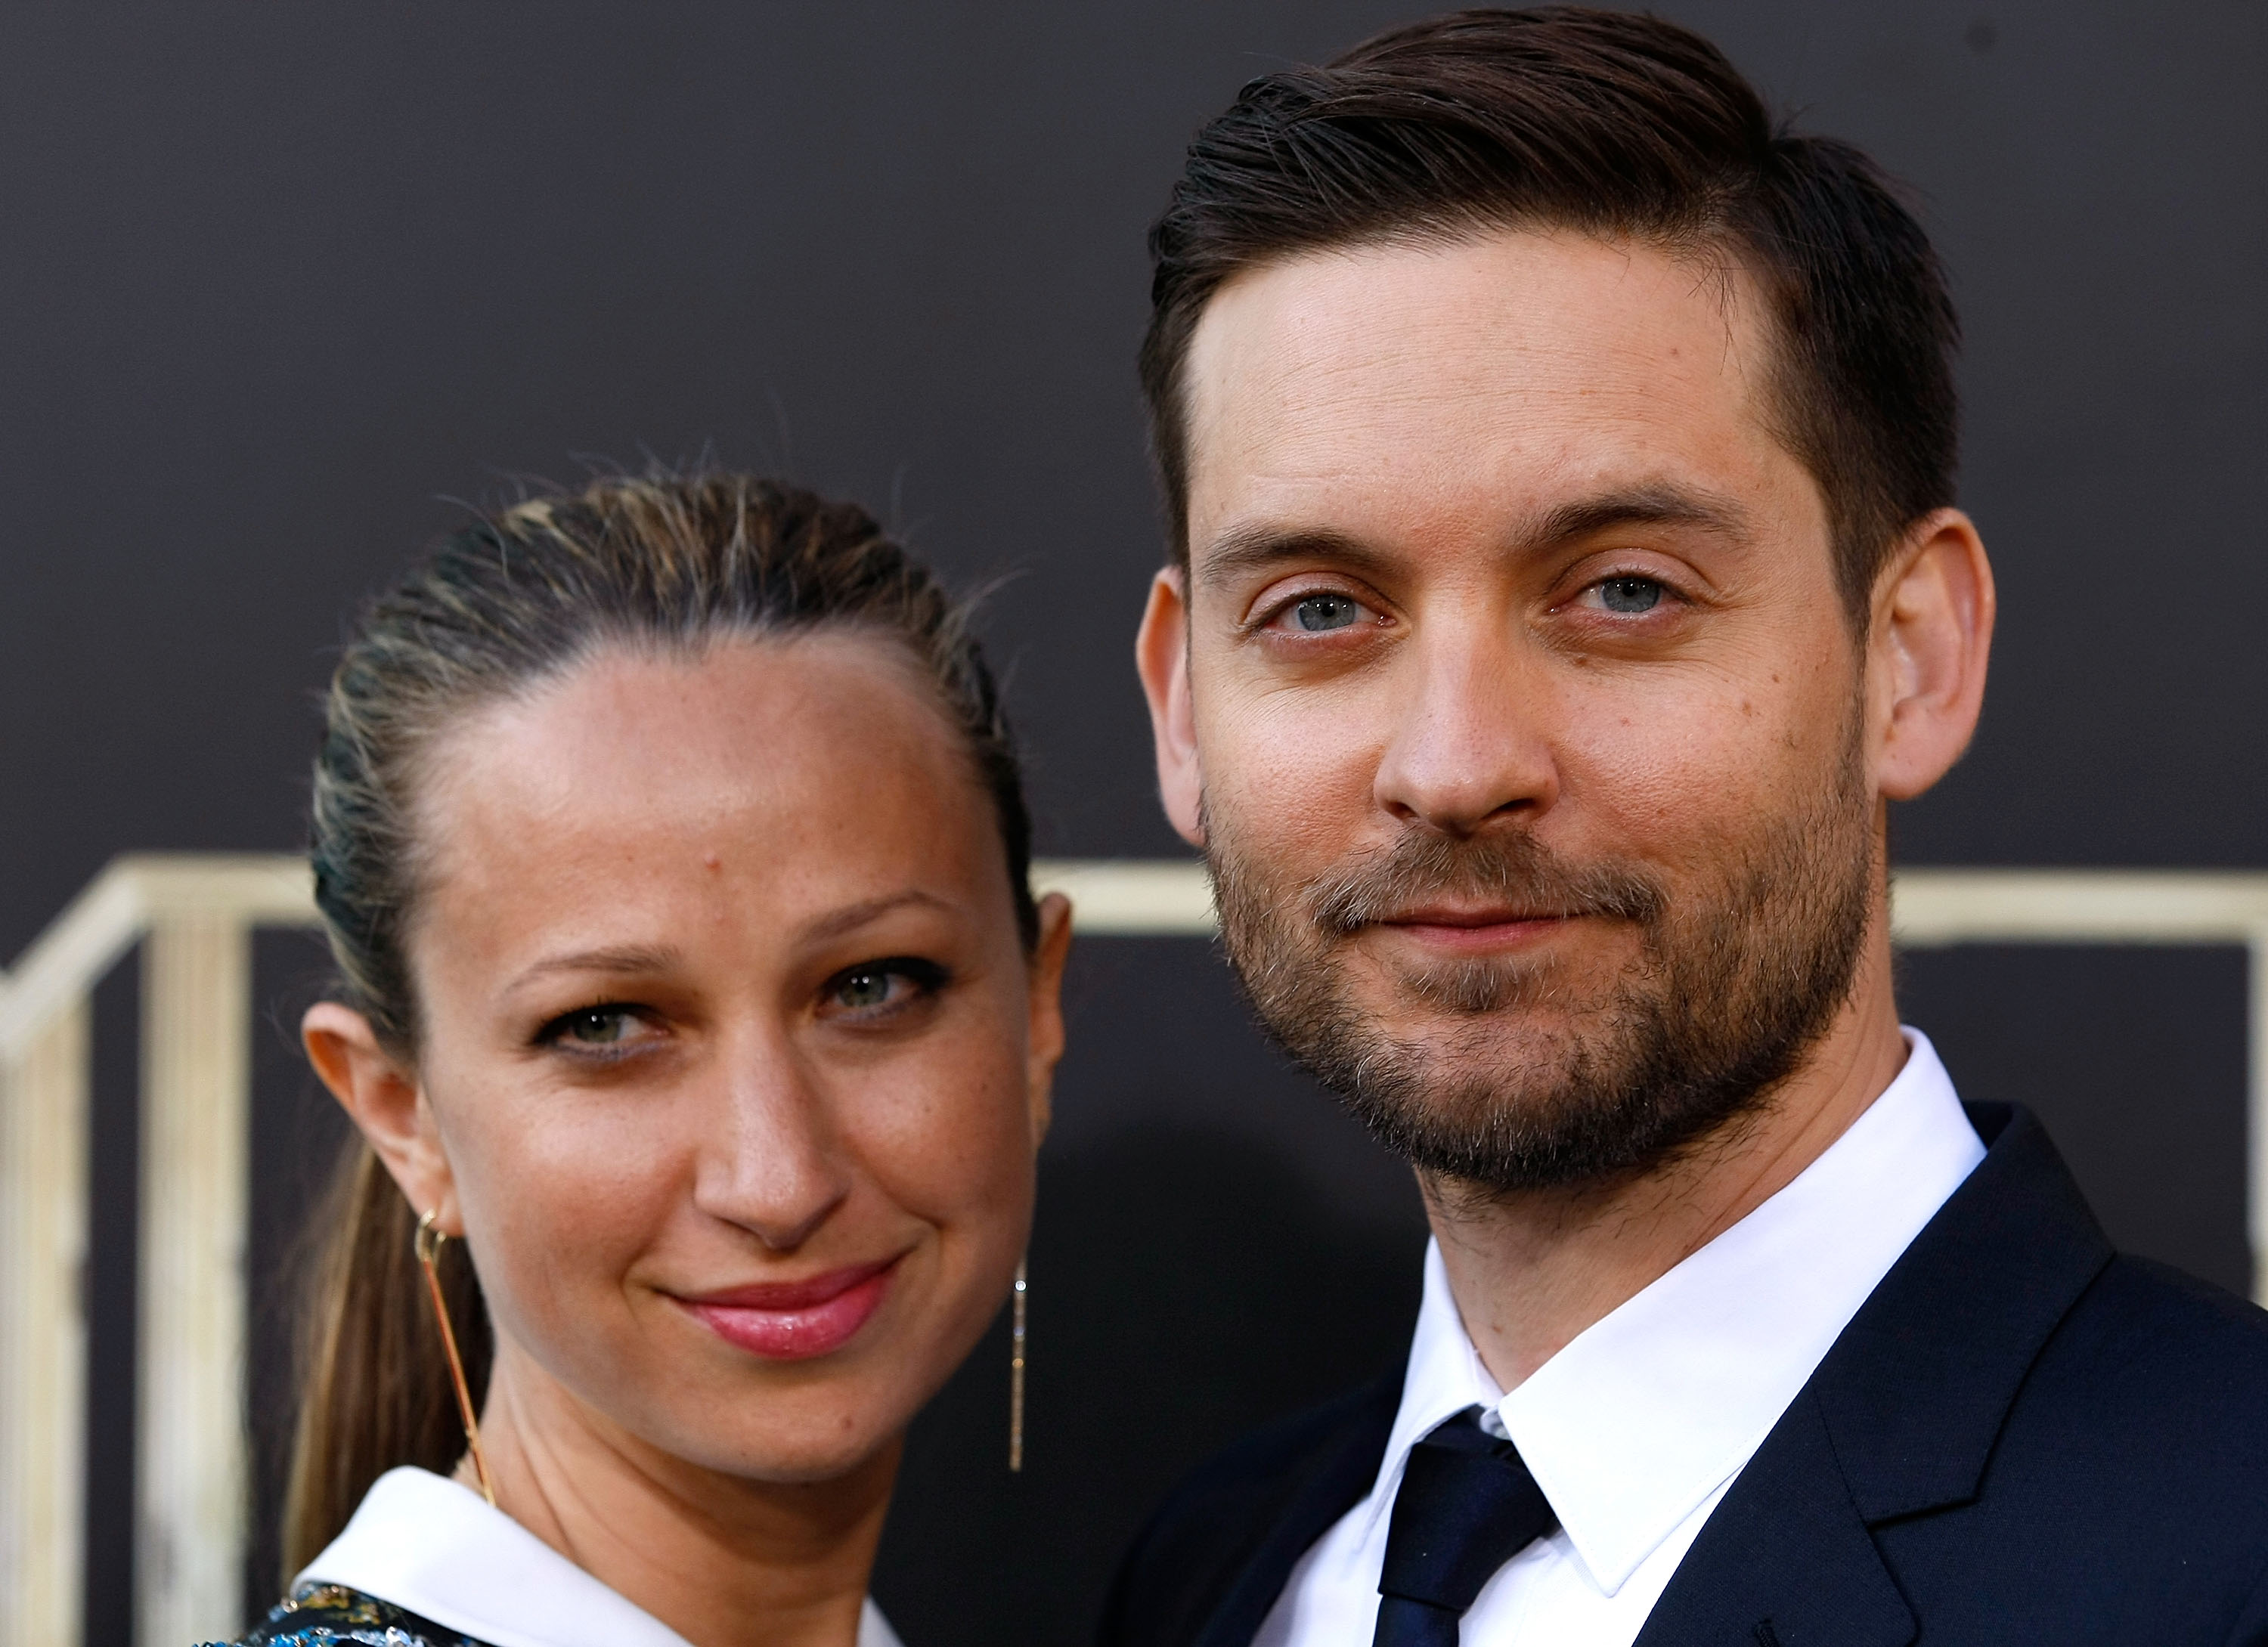 """NEW YORK, NY - MAY 01: Jennifer Meyer Maguire and actor Tobey Maguire attend the """"The Great Gatsby"""" world premiere at Avery Fisher Hall at Lincoln Center for the Performing Arts on May 1, 2013 in New York City. (Photo by Jemal Countess/Getty Images)"""